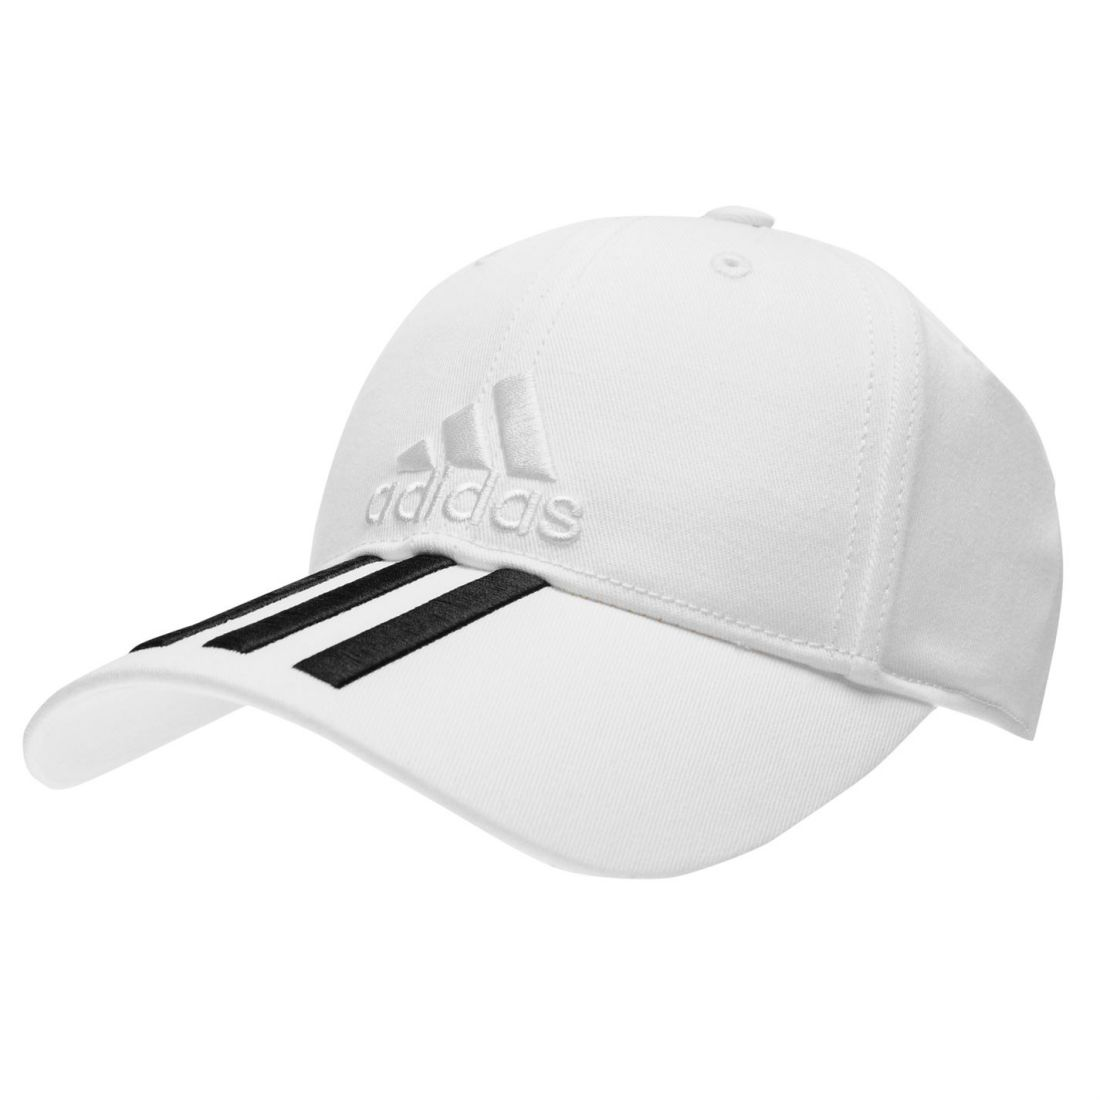 adidas Children s Leisure Cappy 6 Panel Classic Cap 3 Stripes Cotton ... f936e2b6b36d